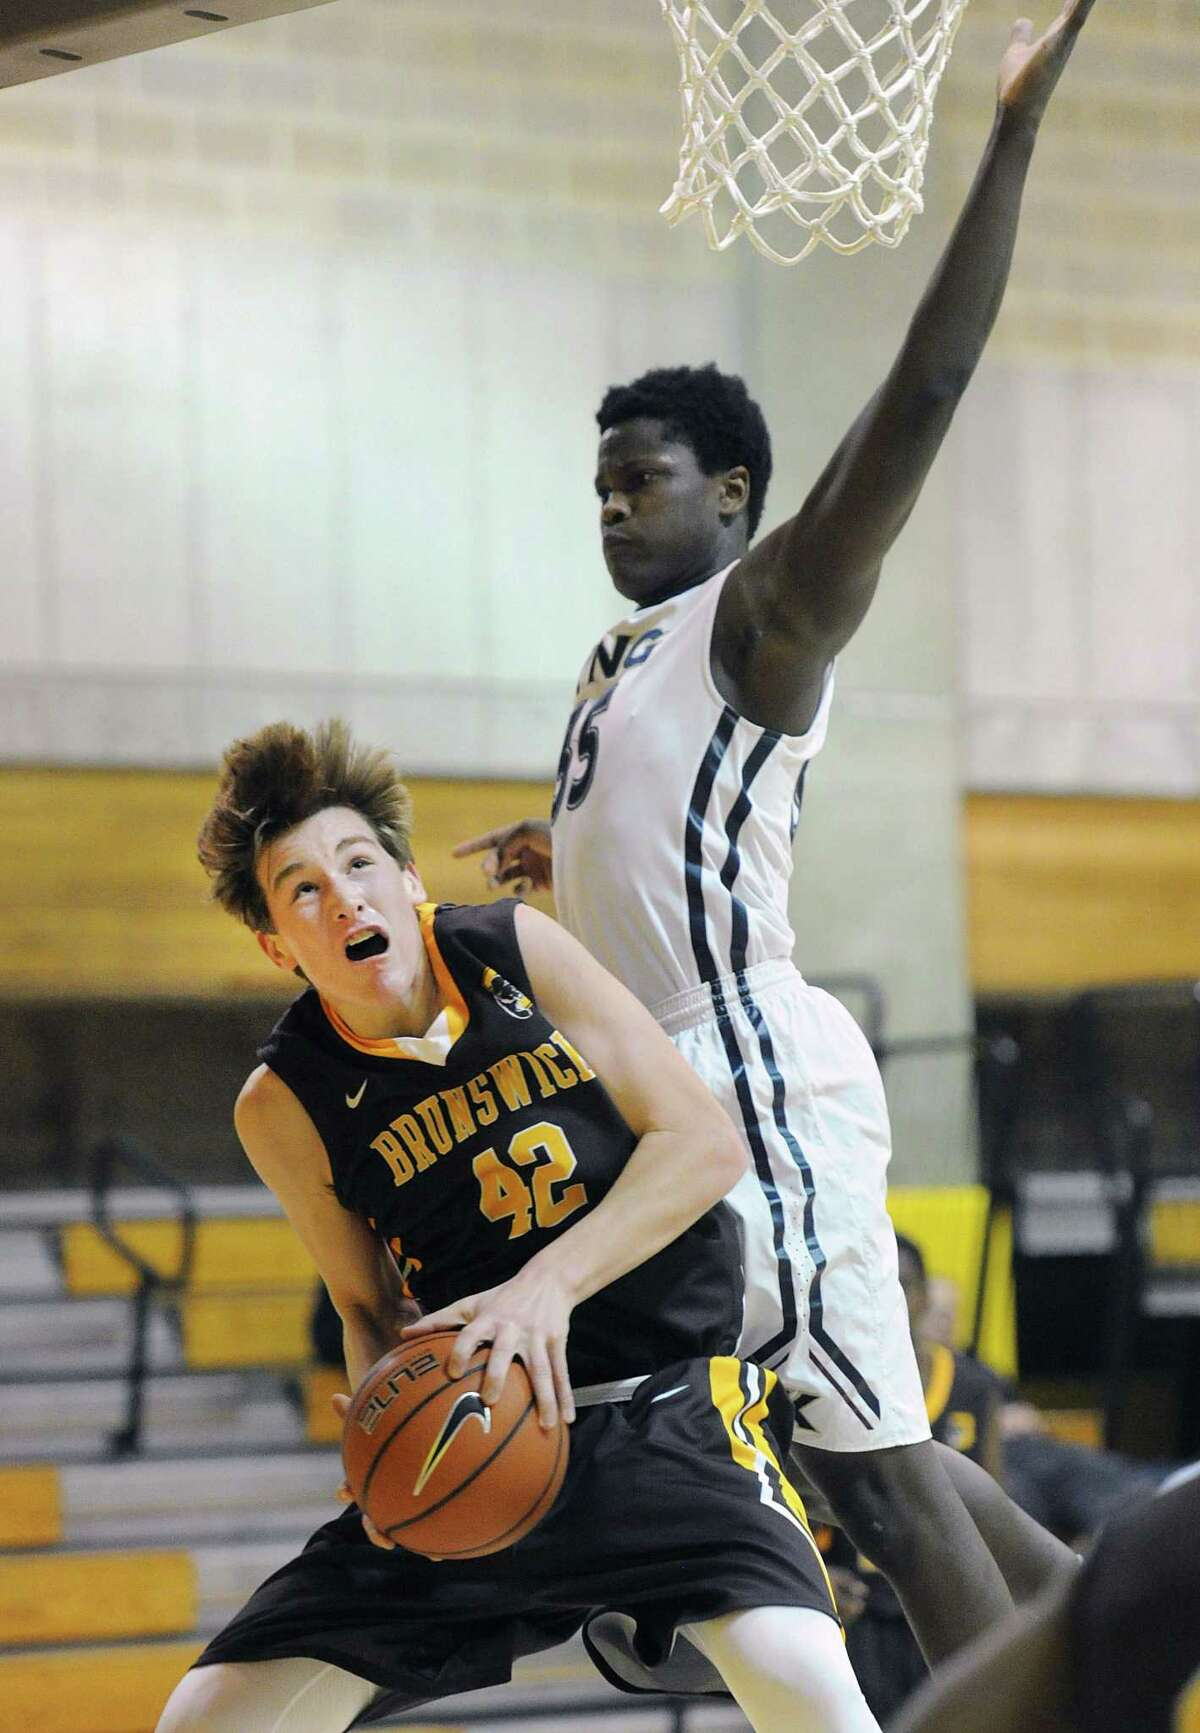 Jack Molloy (42) tries to score from under the basket during his freshman year at Brunswick School in a game against King School in 2016.